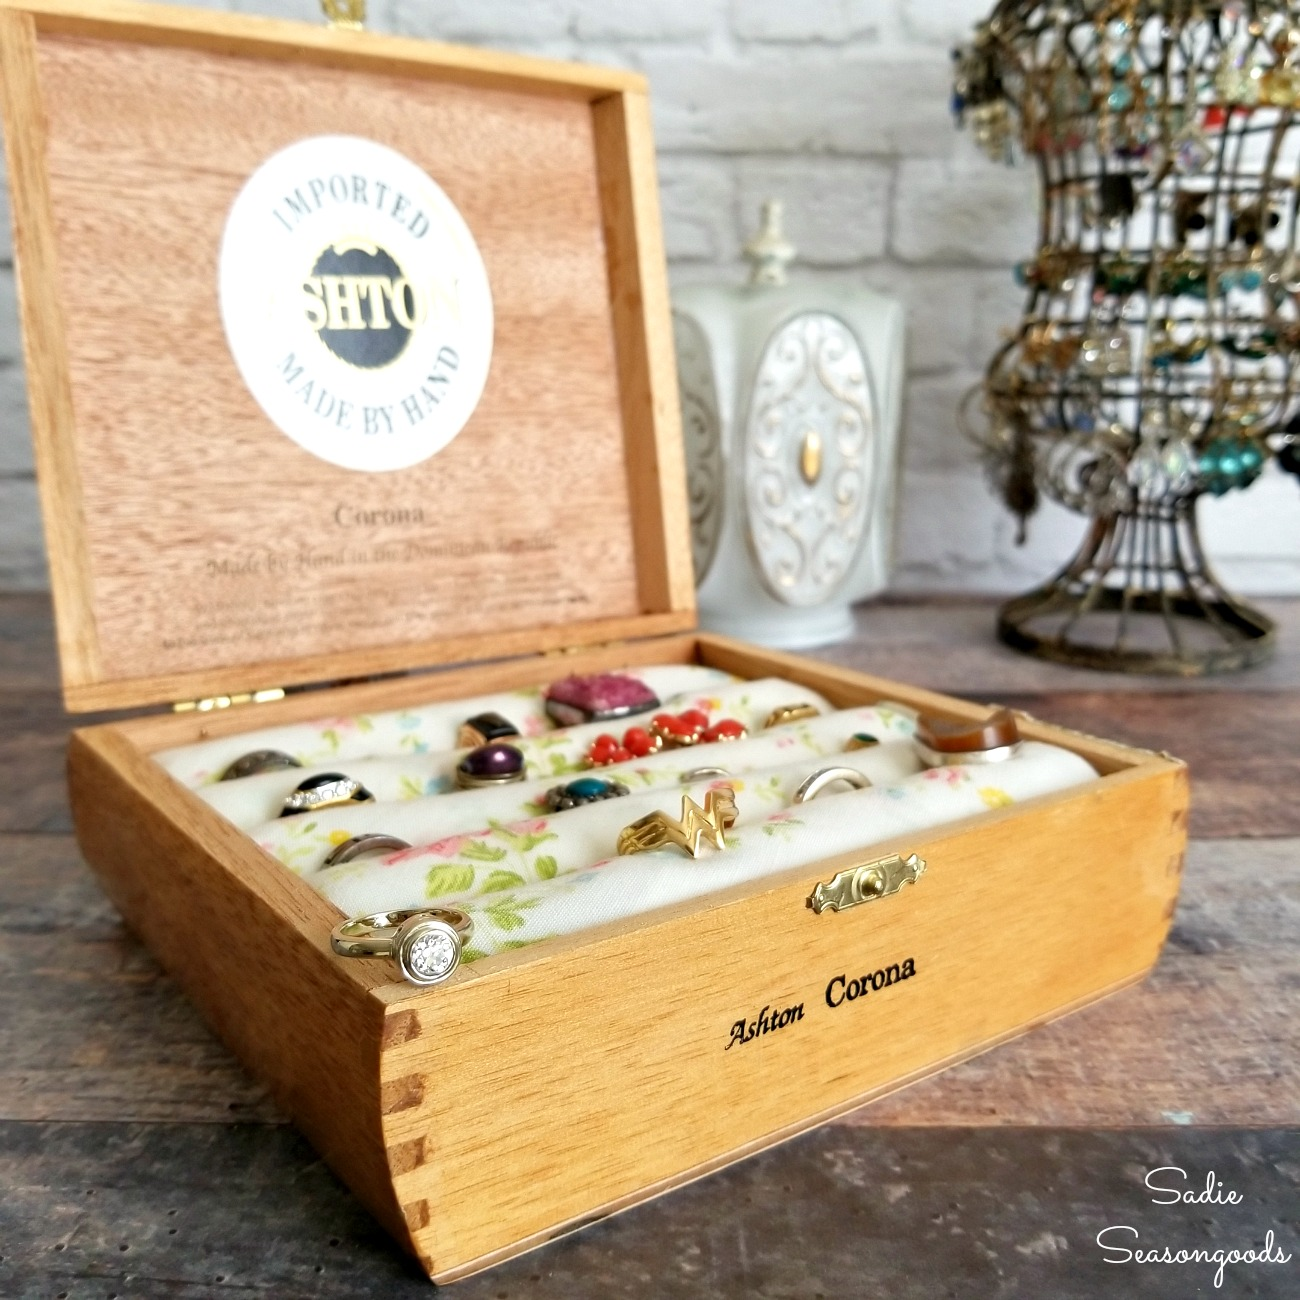 Ring holder made by upcycling a cigar box or vintage cigar box into a jewelry chest or wooden jewelry box